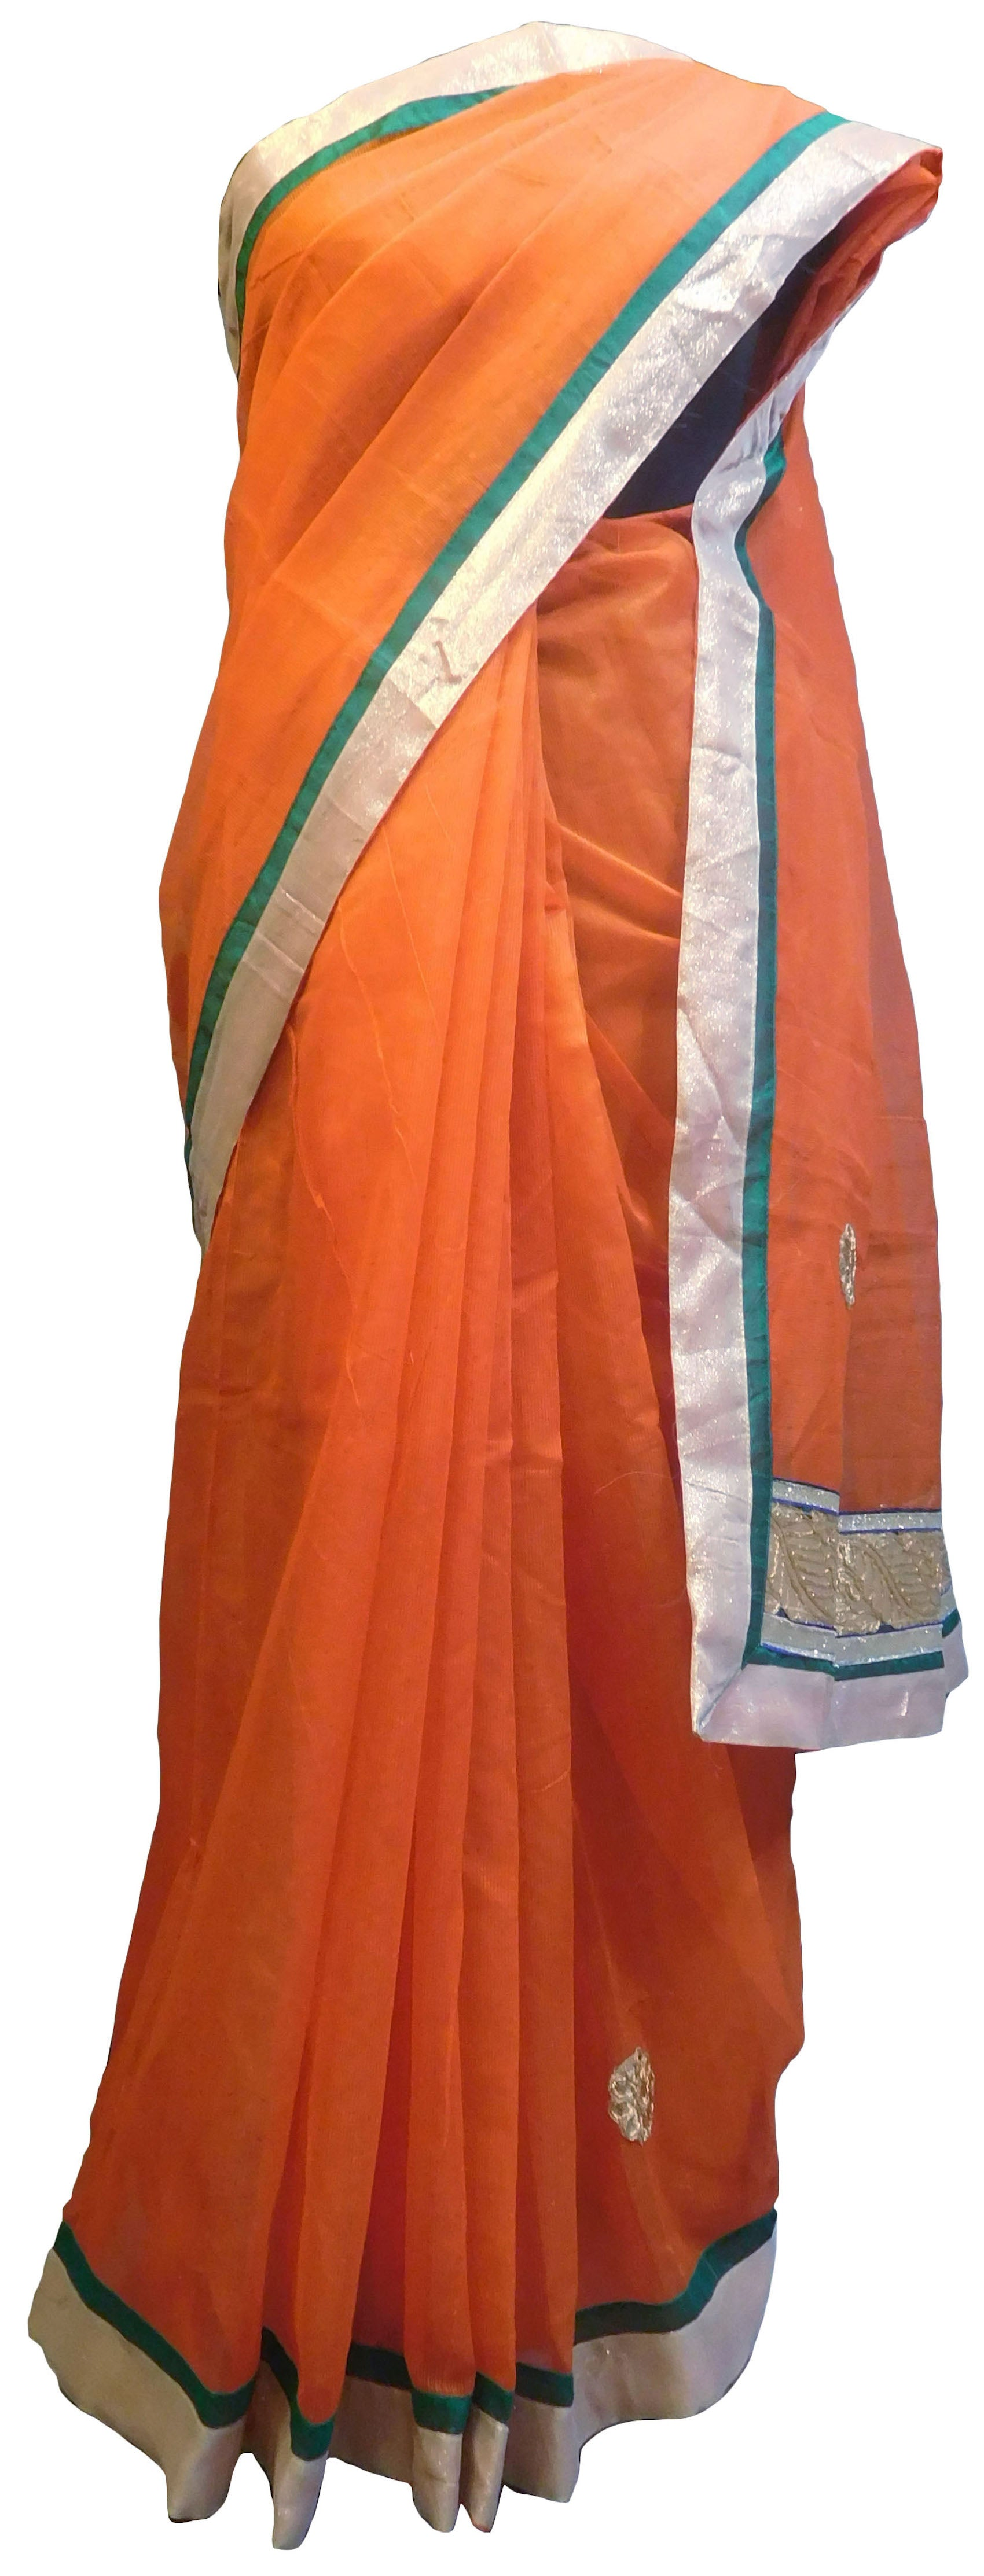 SMSAREE Orange Designer Wedding Partywear Supernet (Cotton) Zari & Gota Hand Embroidery Work Bridal Saree Sari With Blouse Piece E824